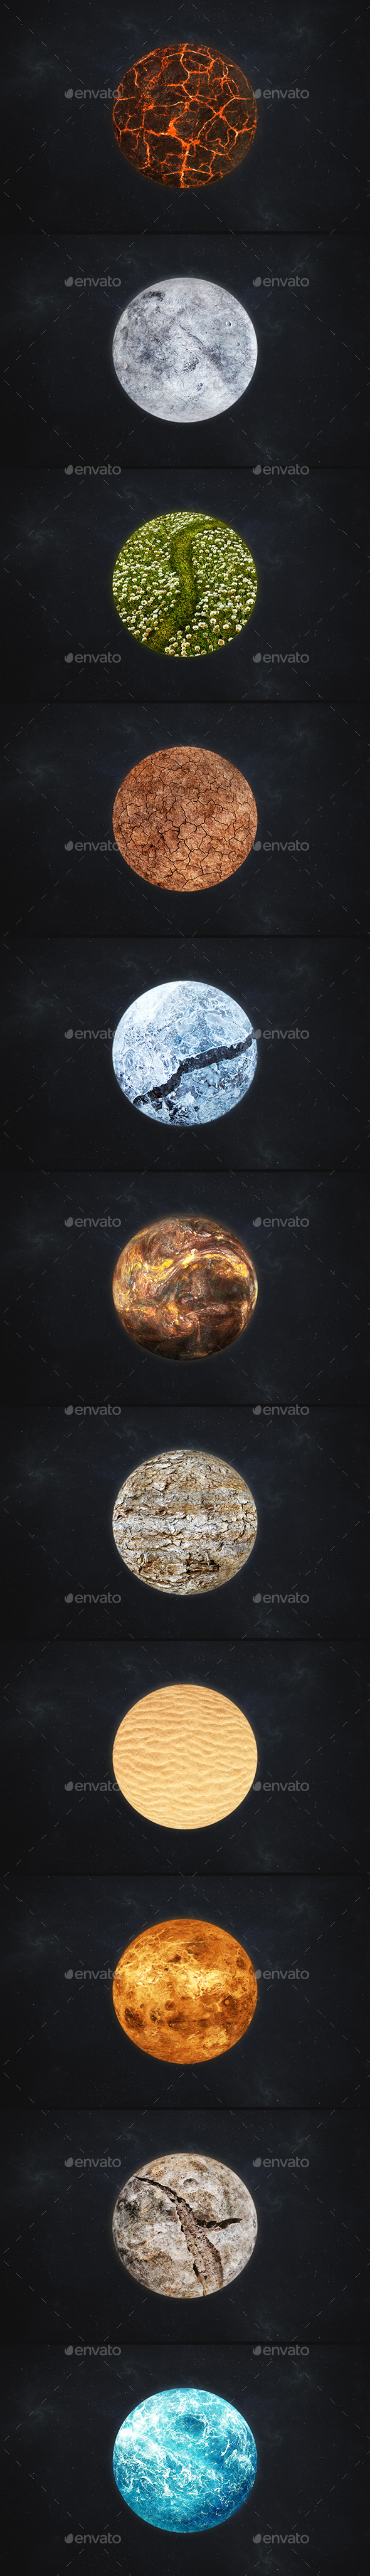 Planet Material - Abstract Illustrations